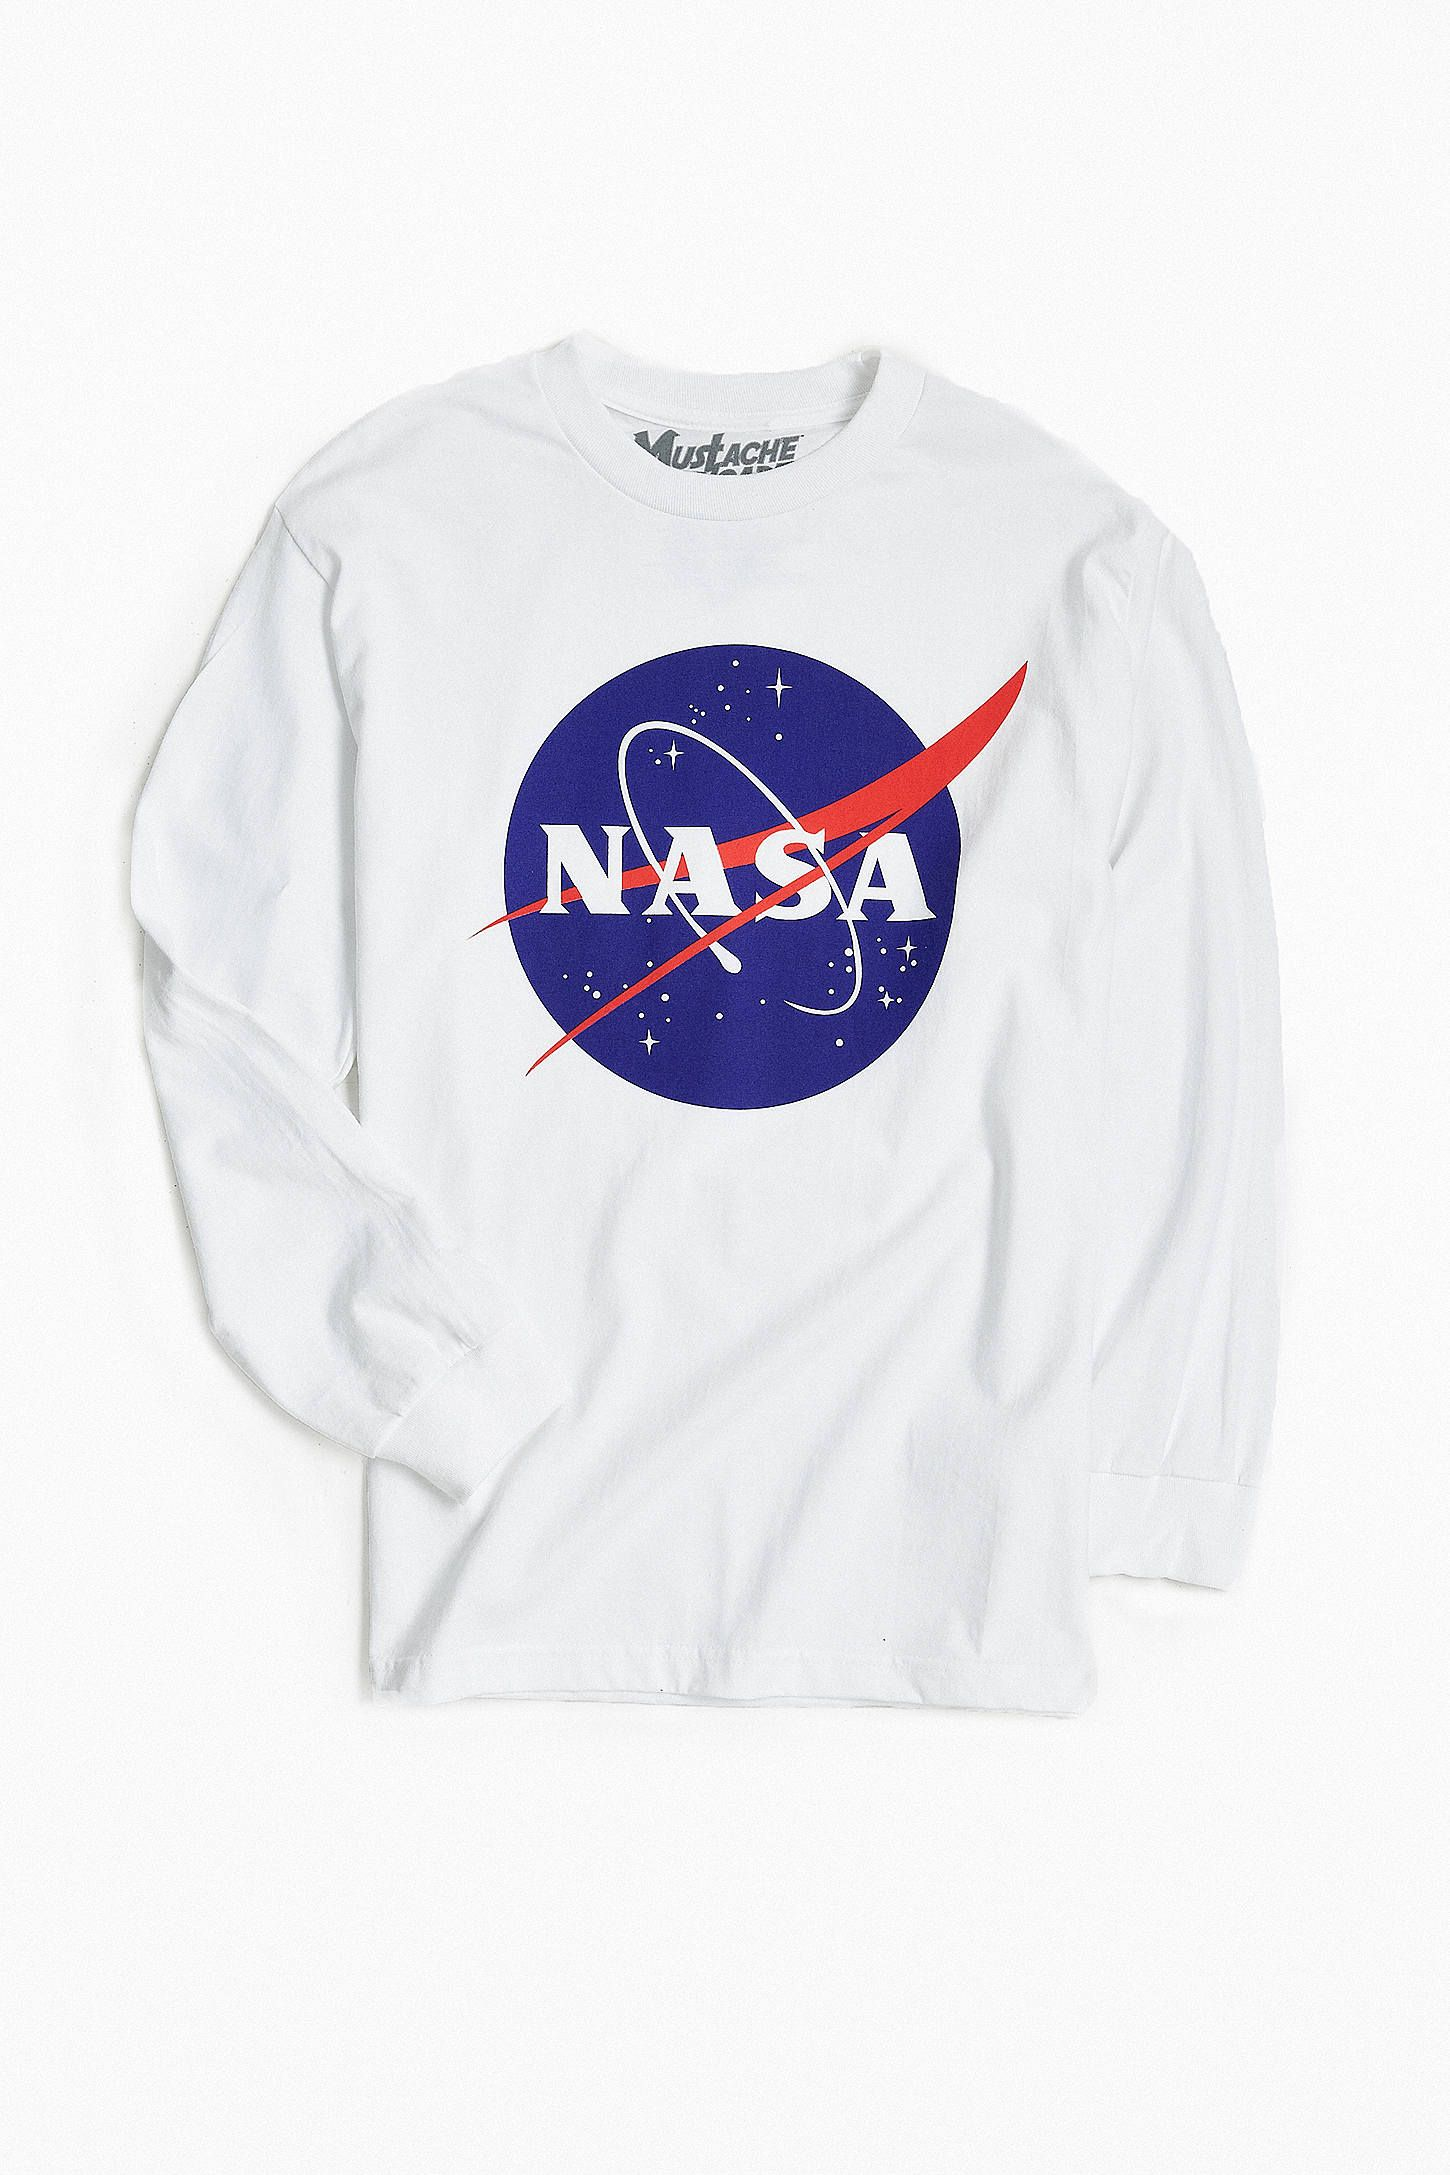 NASA Logo Long Sleeve Tee Baggy shirts, Nasa clothes